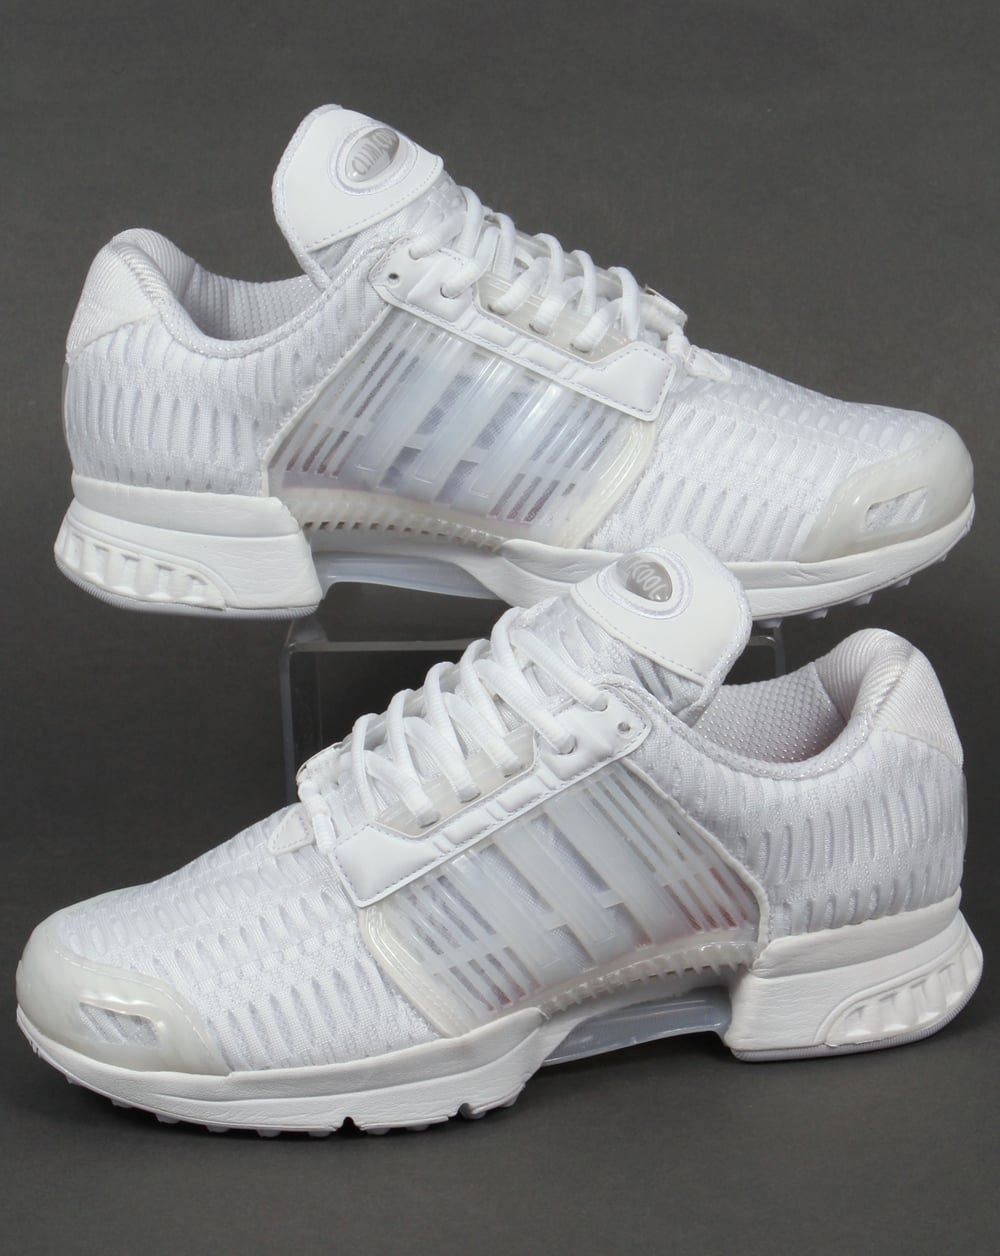 adidas clima cool 1 trainers triple white originals shoes. Black Bedroom Furniture Sets. Home Design Ideas